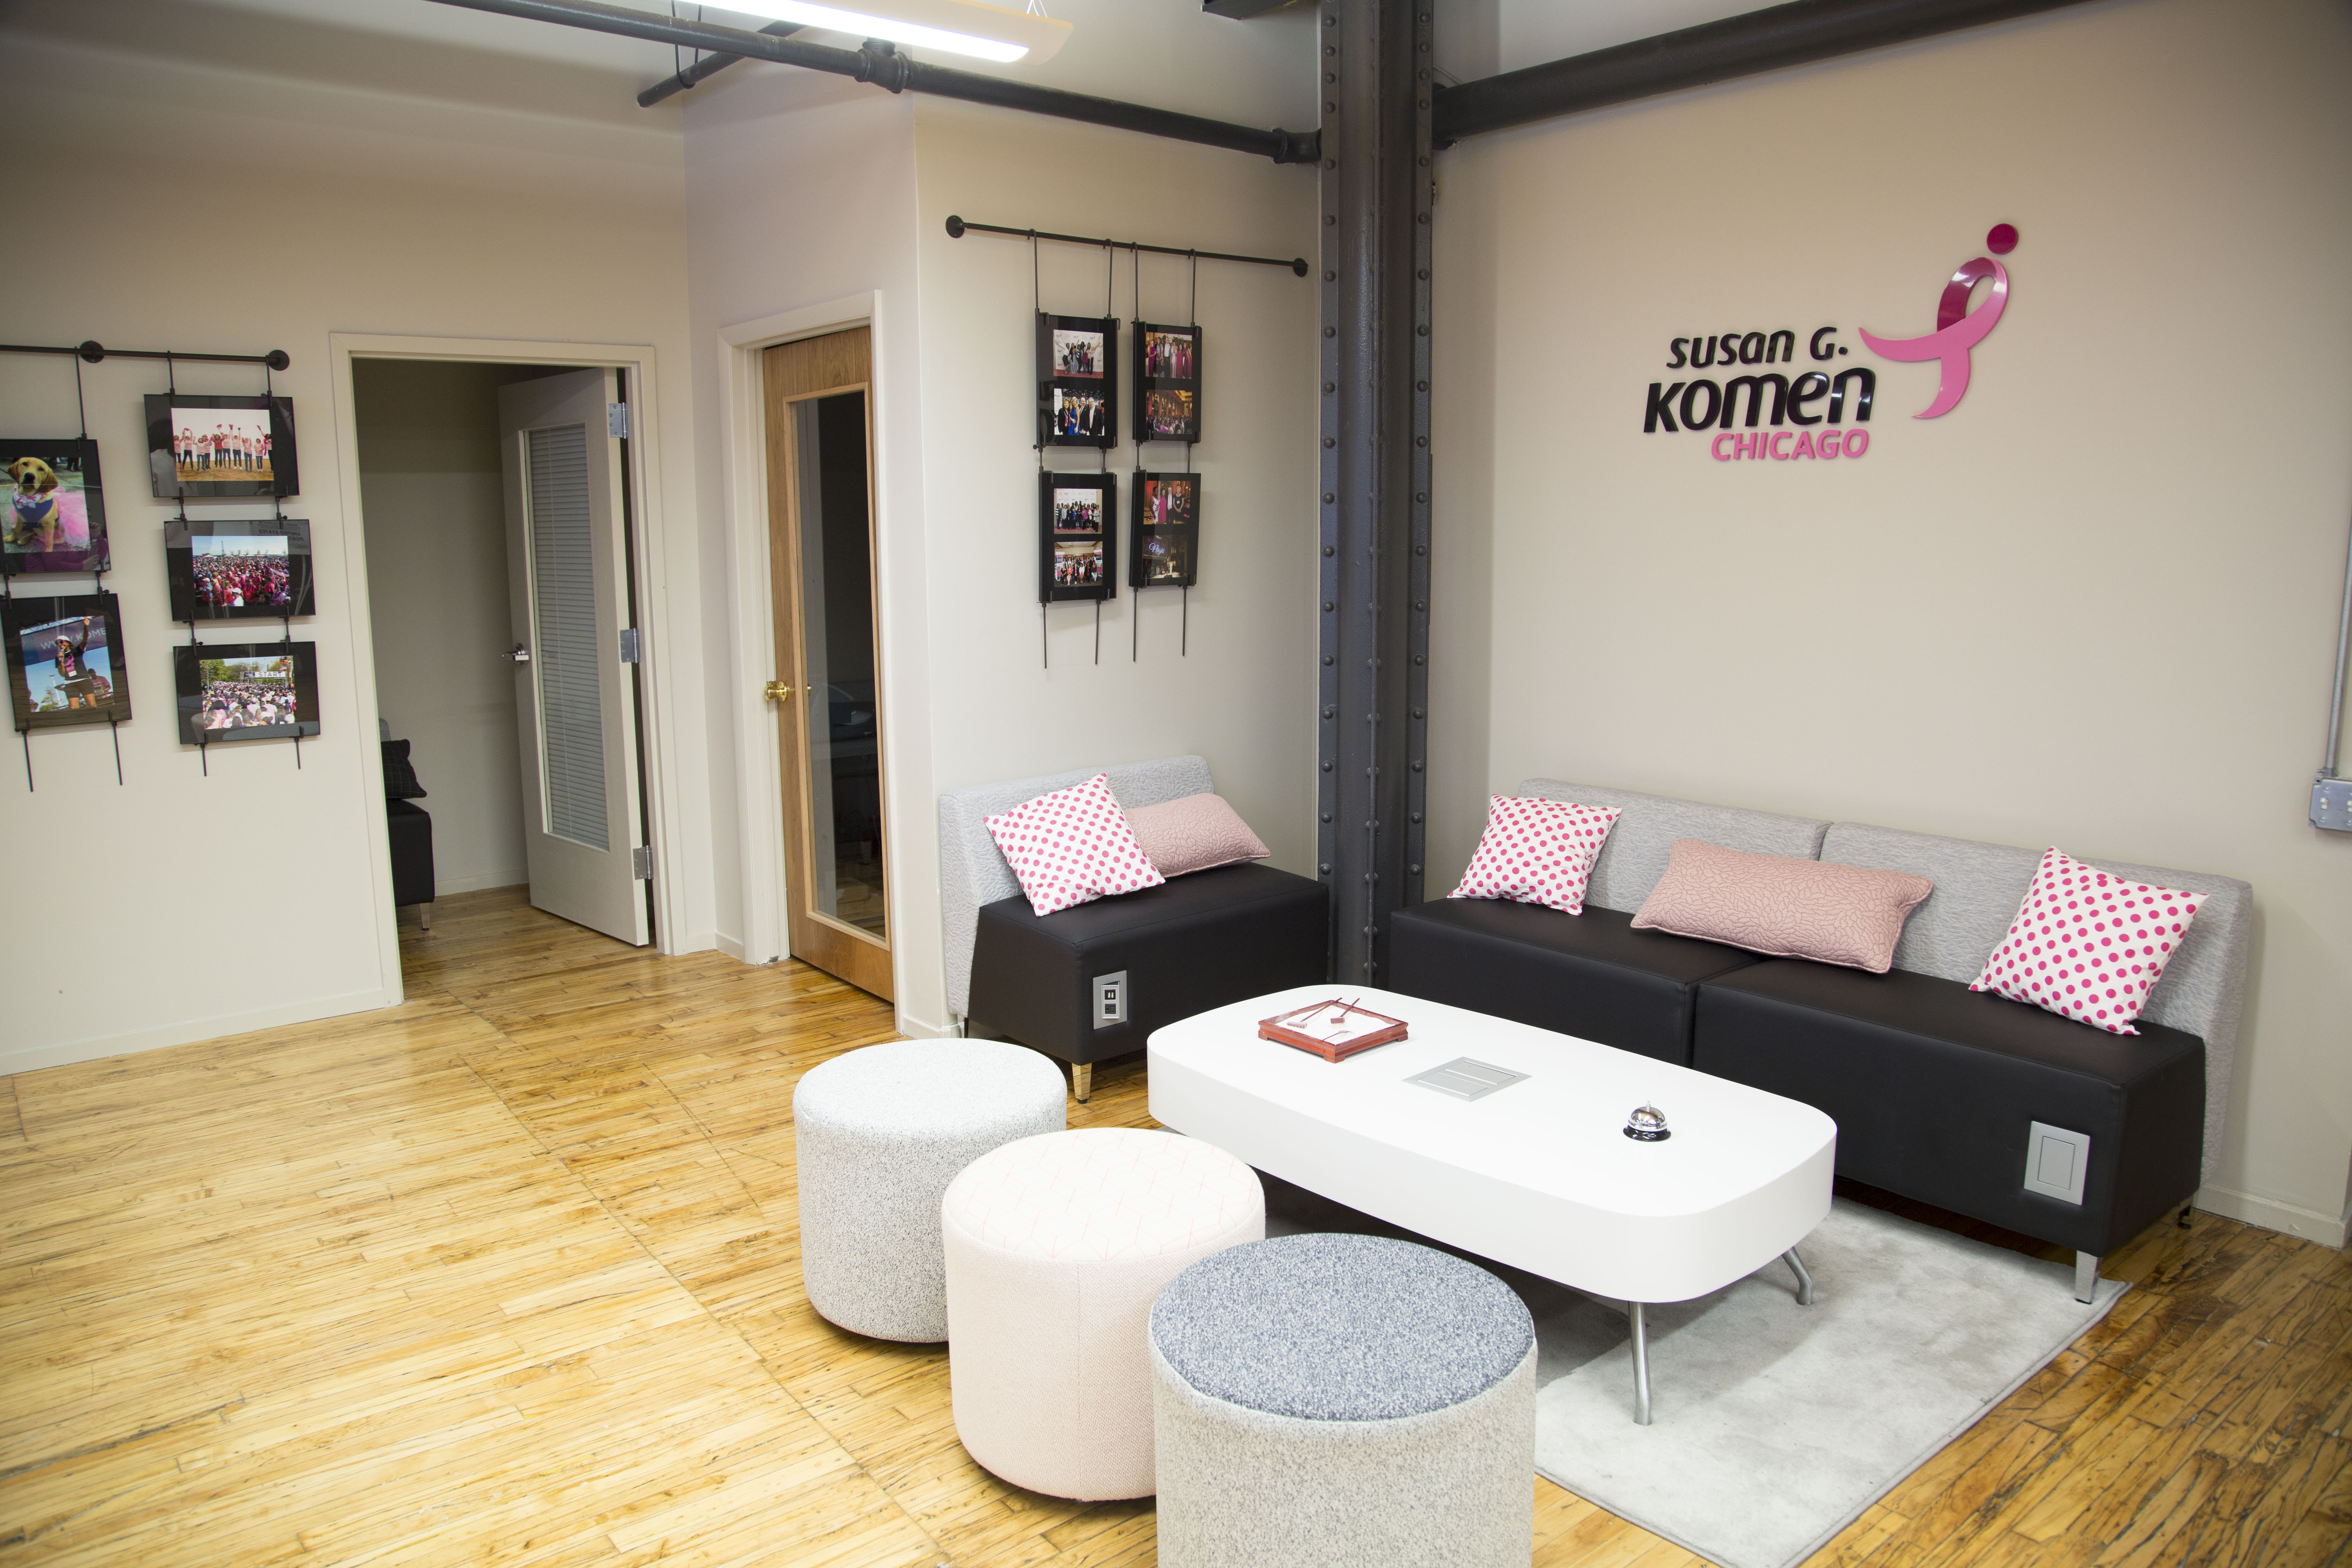 ... To $90k In New Furniture At A Very Low Cost. The Savings Achieved For  Komen Chicago Translate Into 1,055 Mammograms For Chicagoland Women Who  Otherwise ...